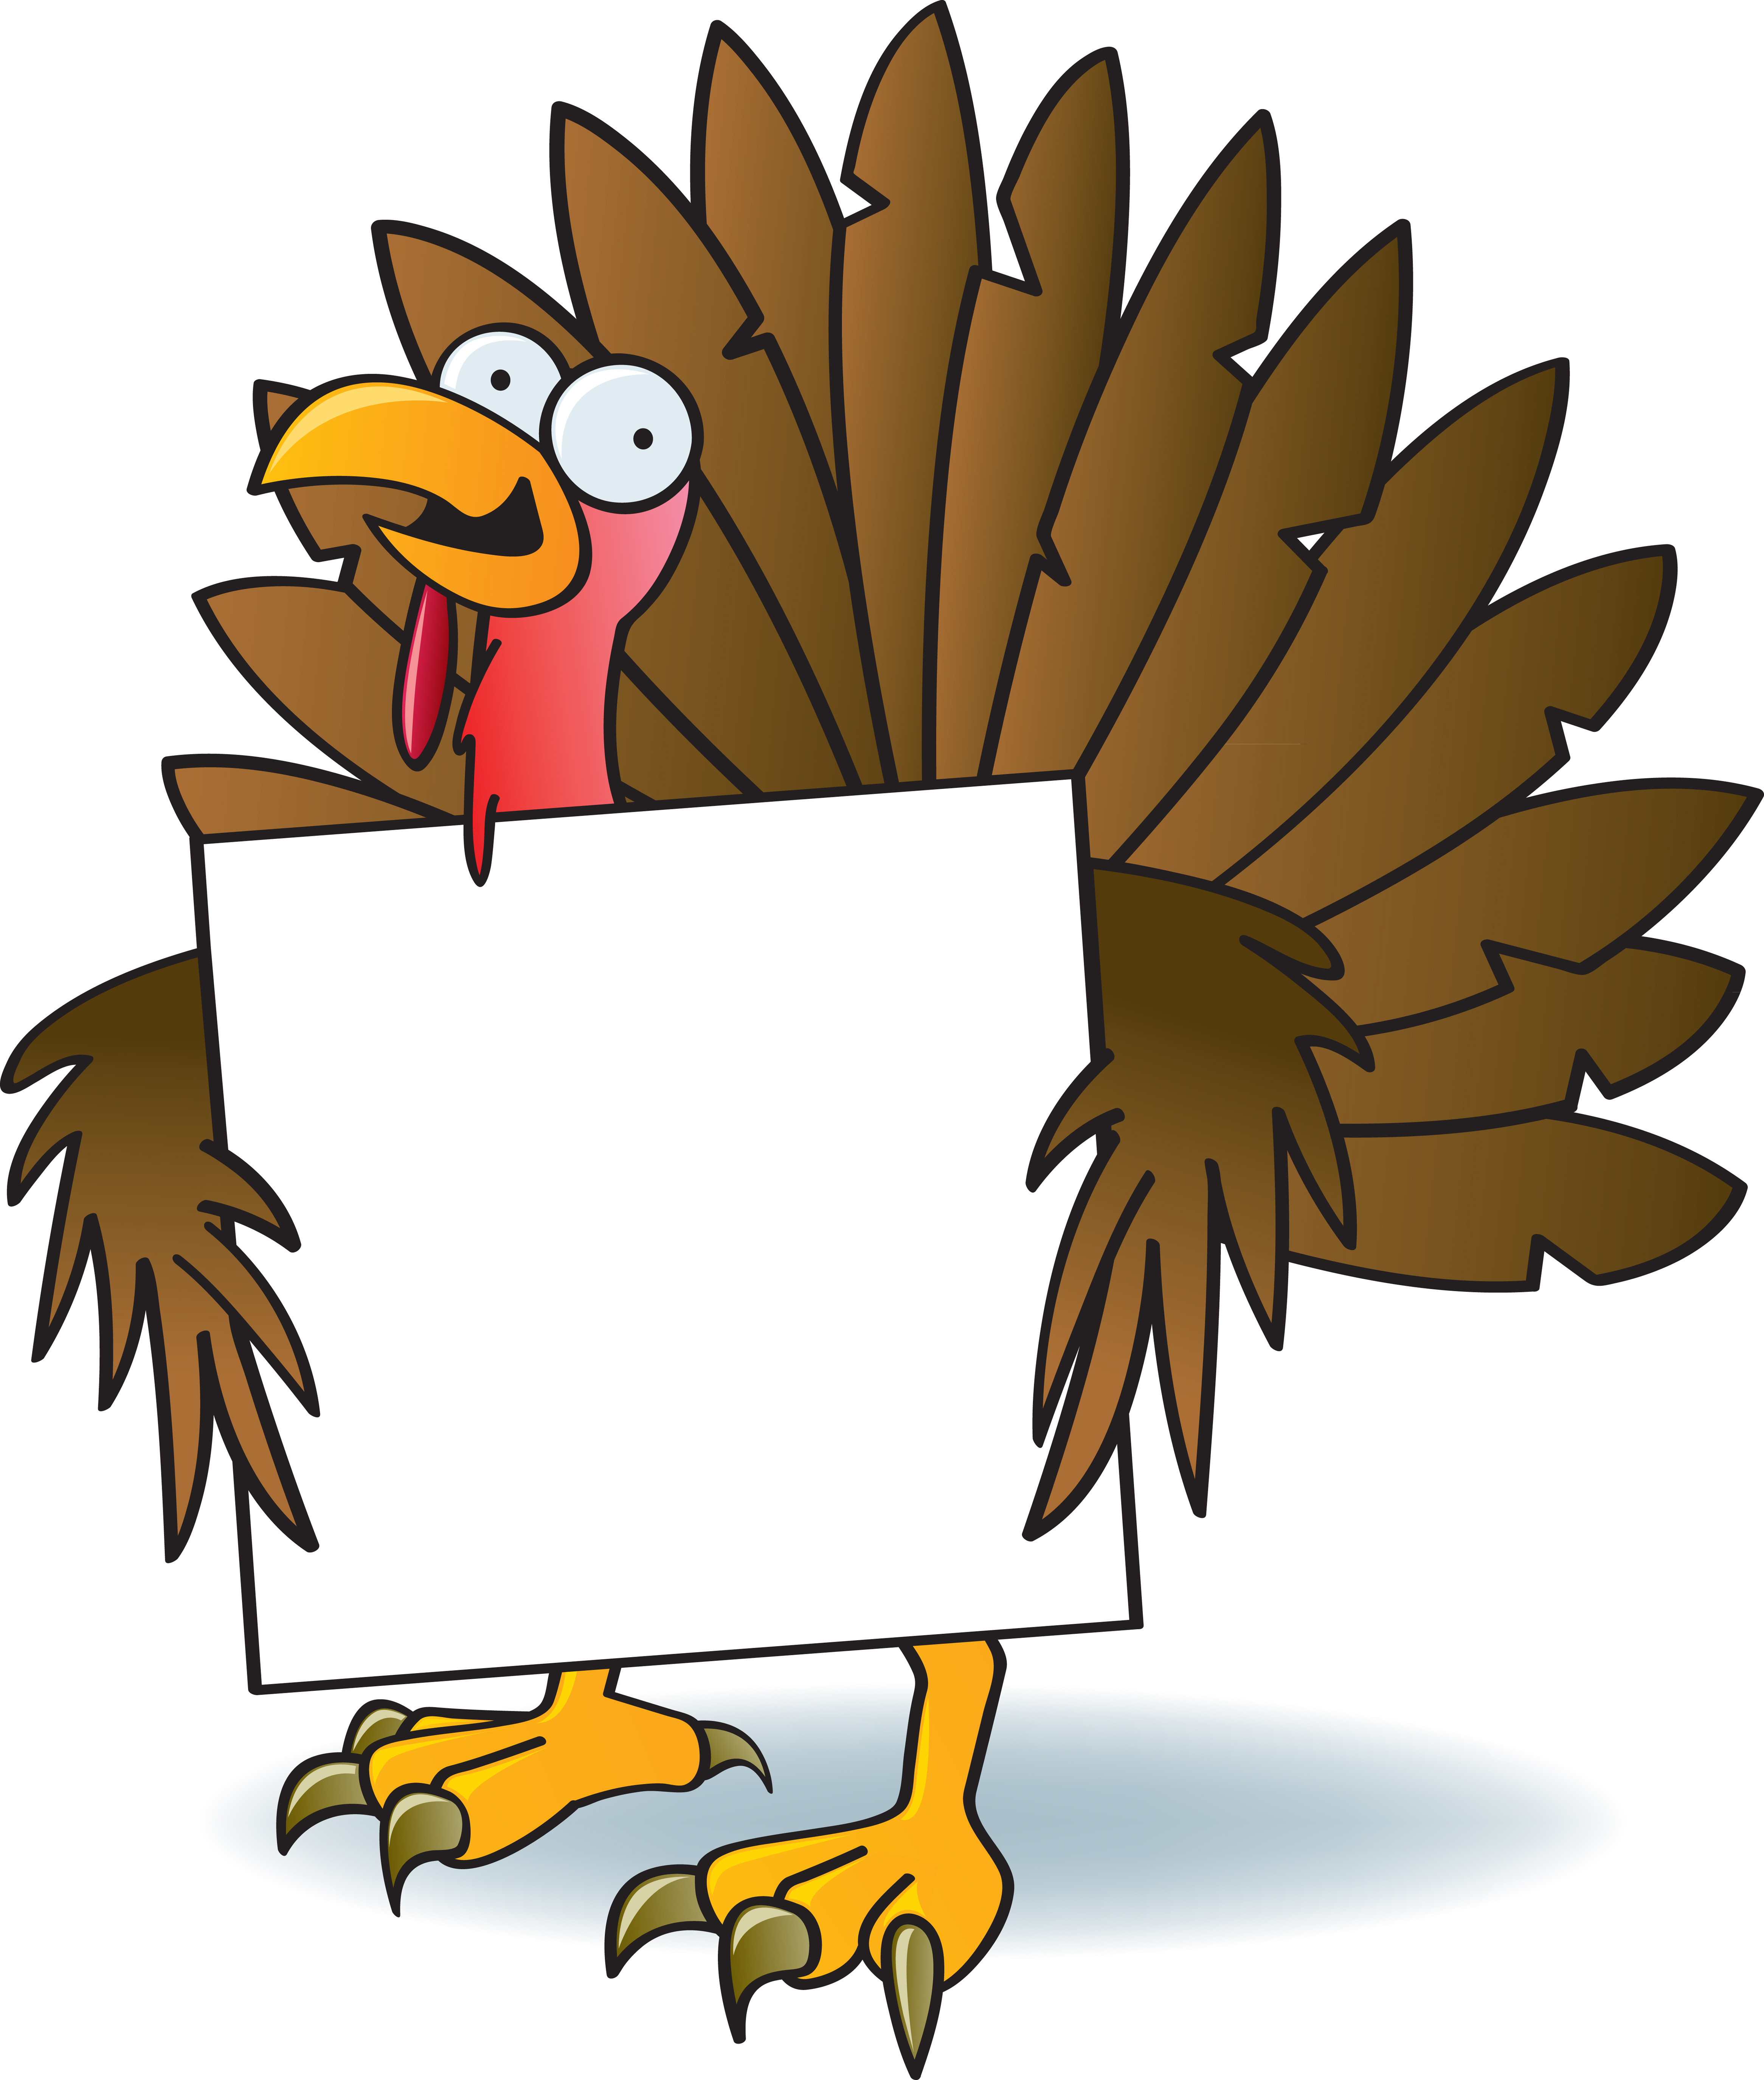 Cartoon Picture Of Turkey For Thanksgiving  Illustration Vector by Jamie Slavy at Coroflot